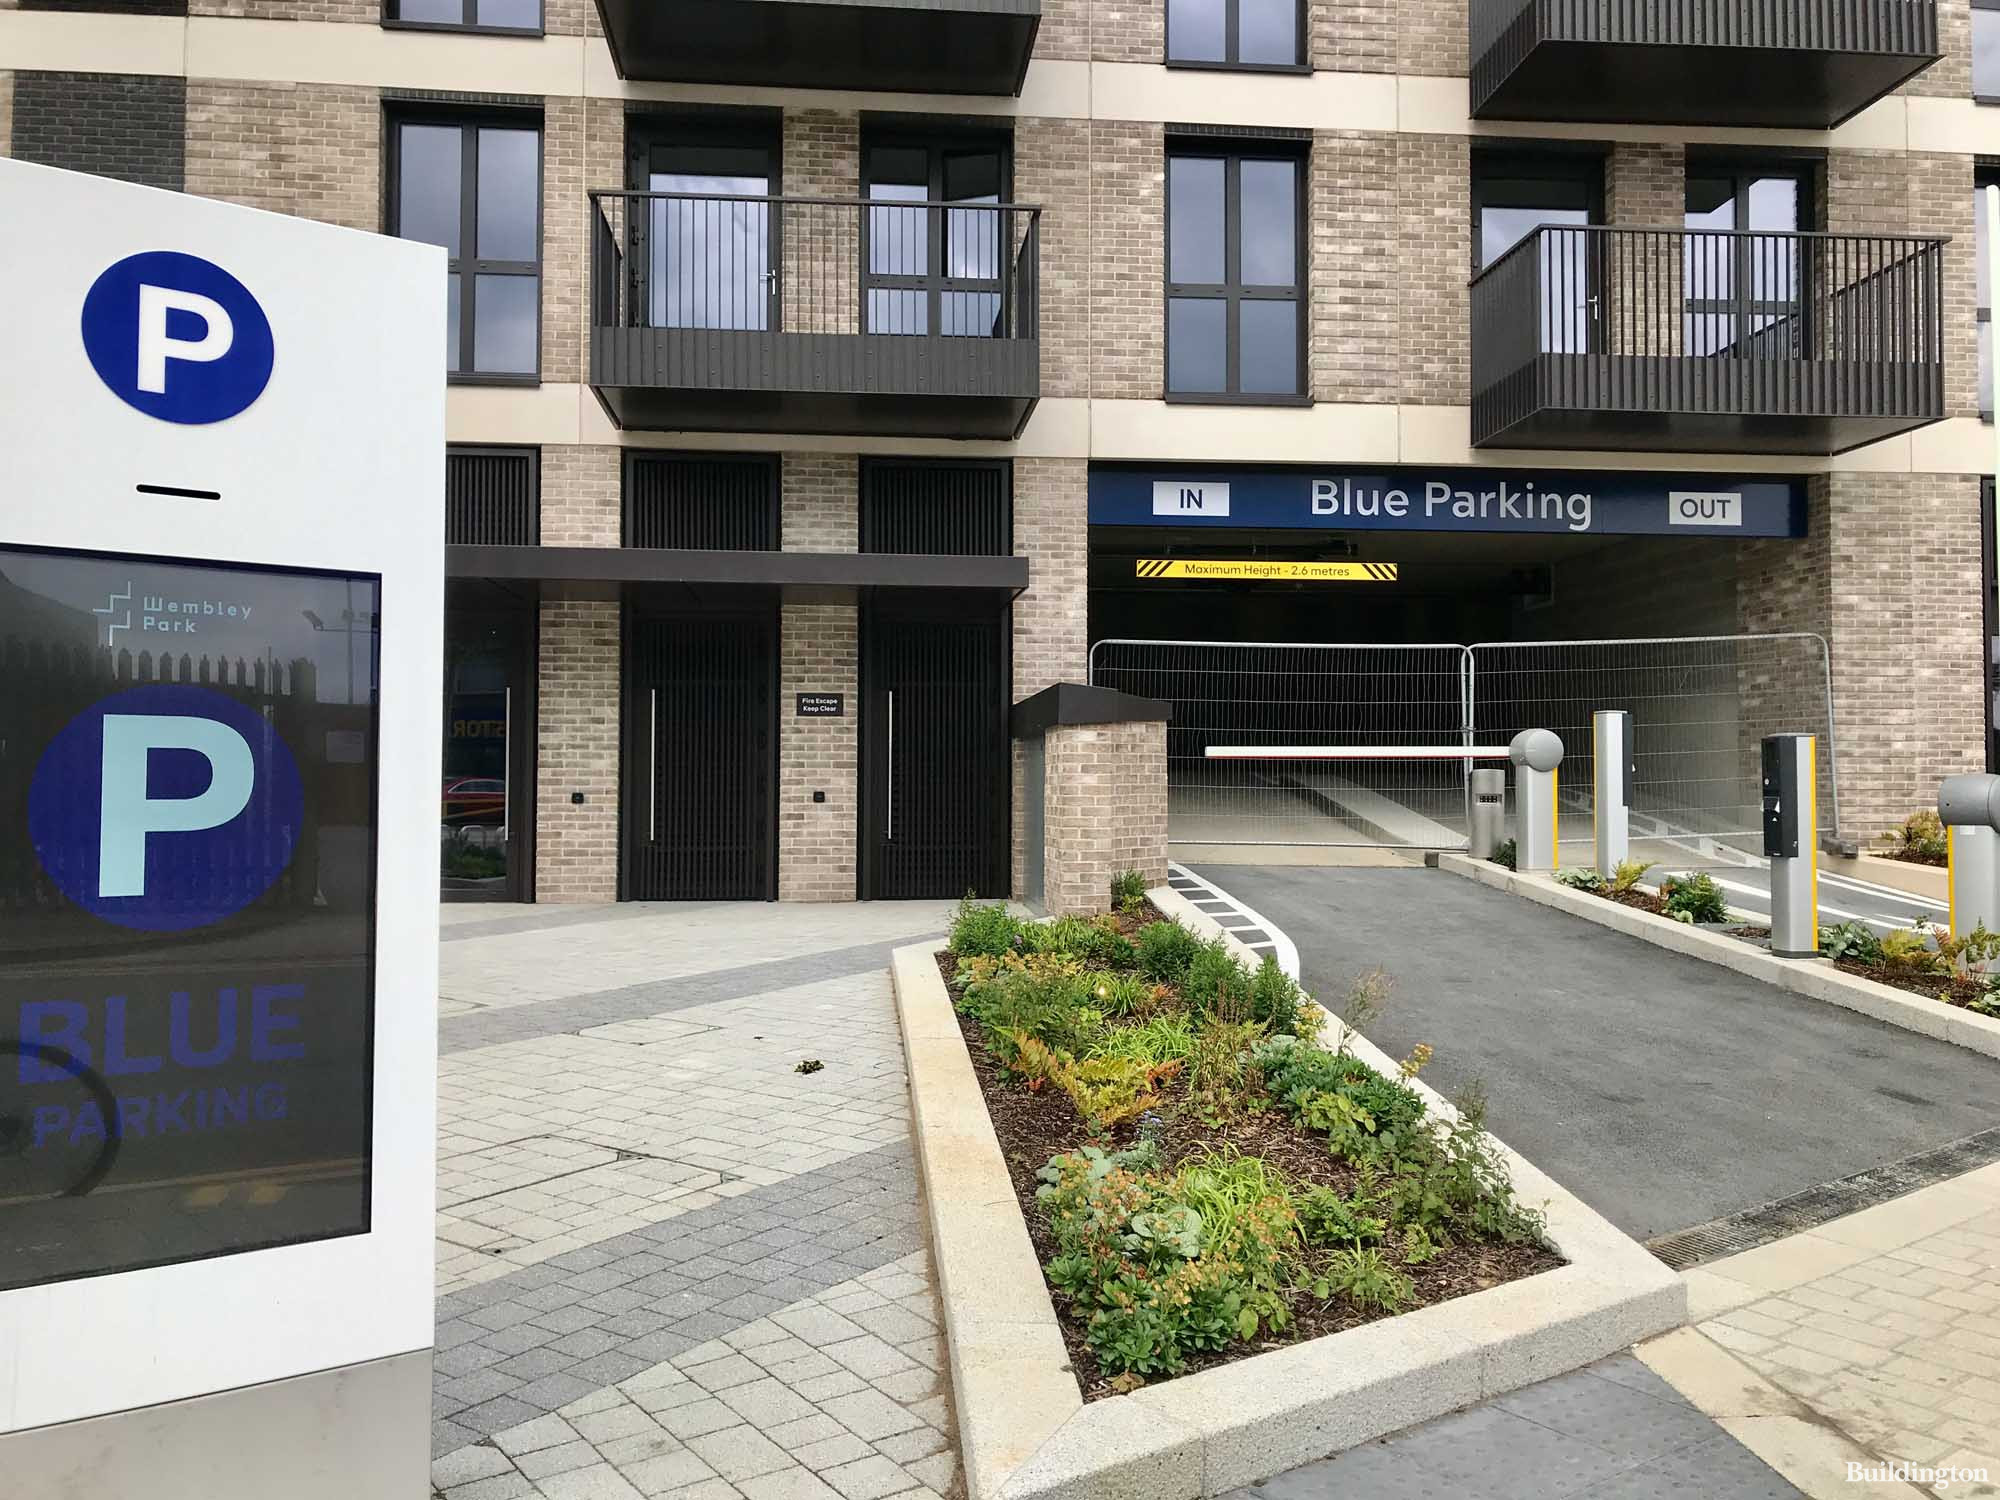 Blue Parking entrance at The Robinson South building on First Way in Wembley HA9. Residents parking has a separate entrance on the side of the building with an entrance on First Way.